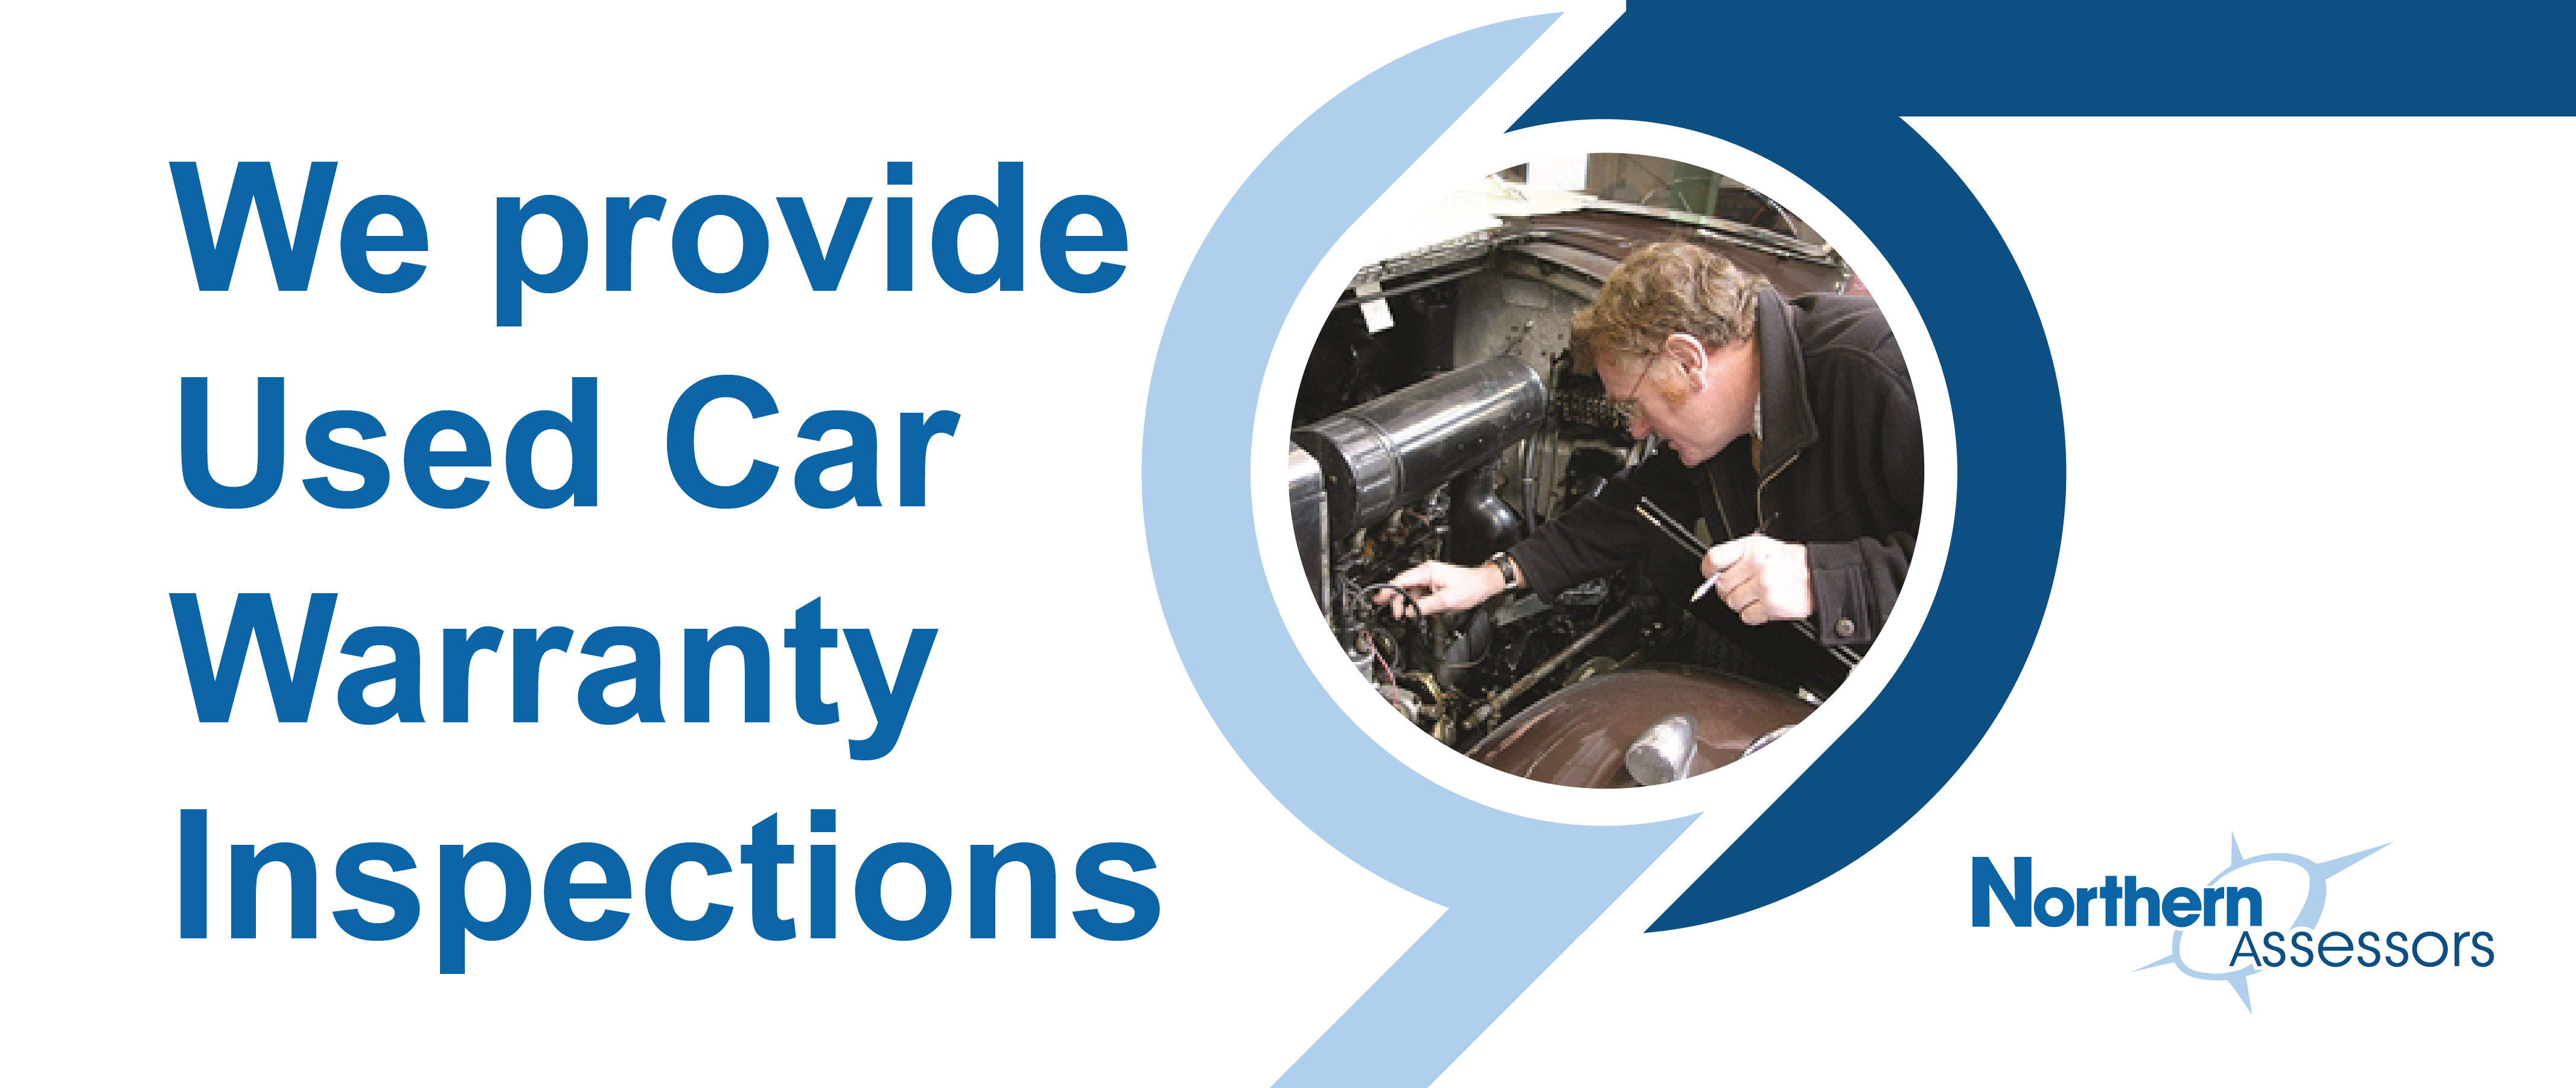 Used Car Warranty Inspections